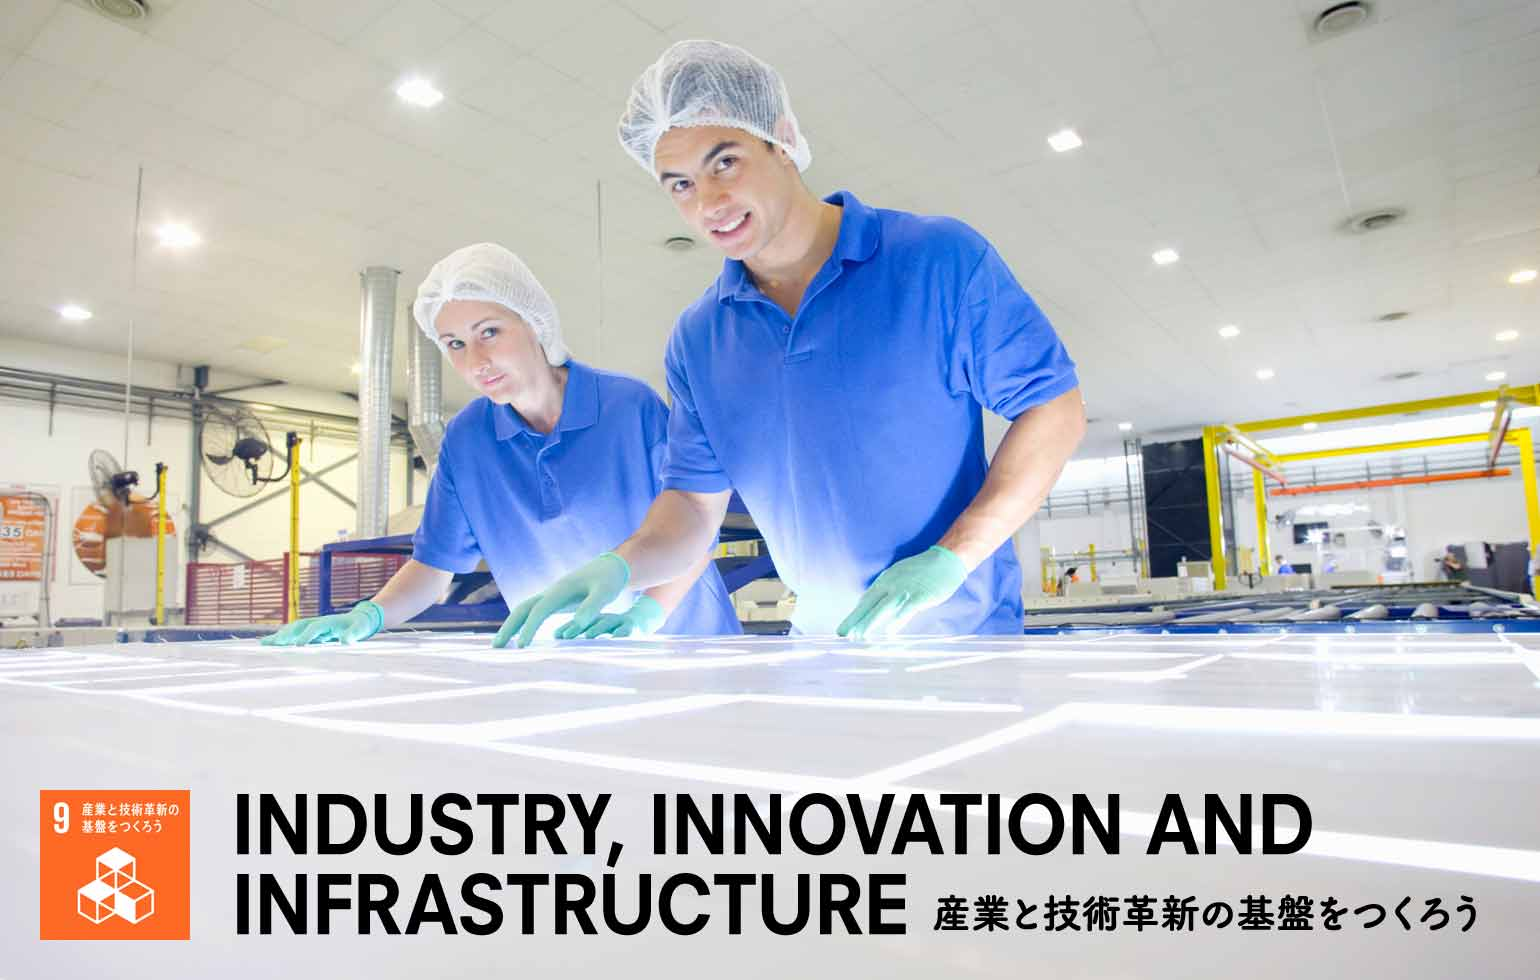 INDUSTRY, INNOVATION AND INFRASTRUCTURE - 産業と技術革新の基盤をつくろう SDGs 画像素材